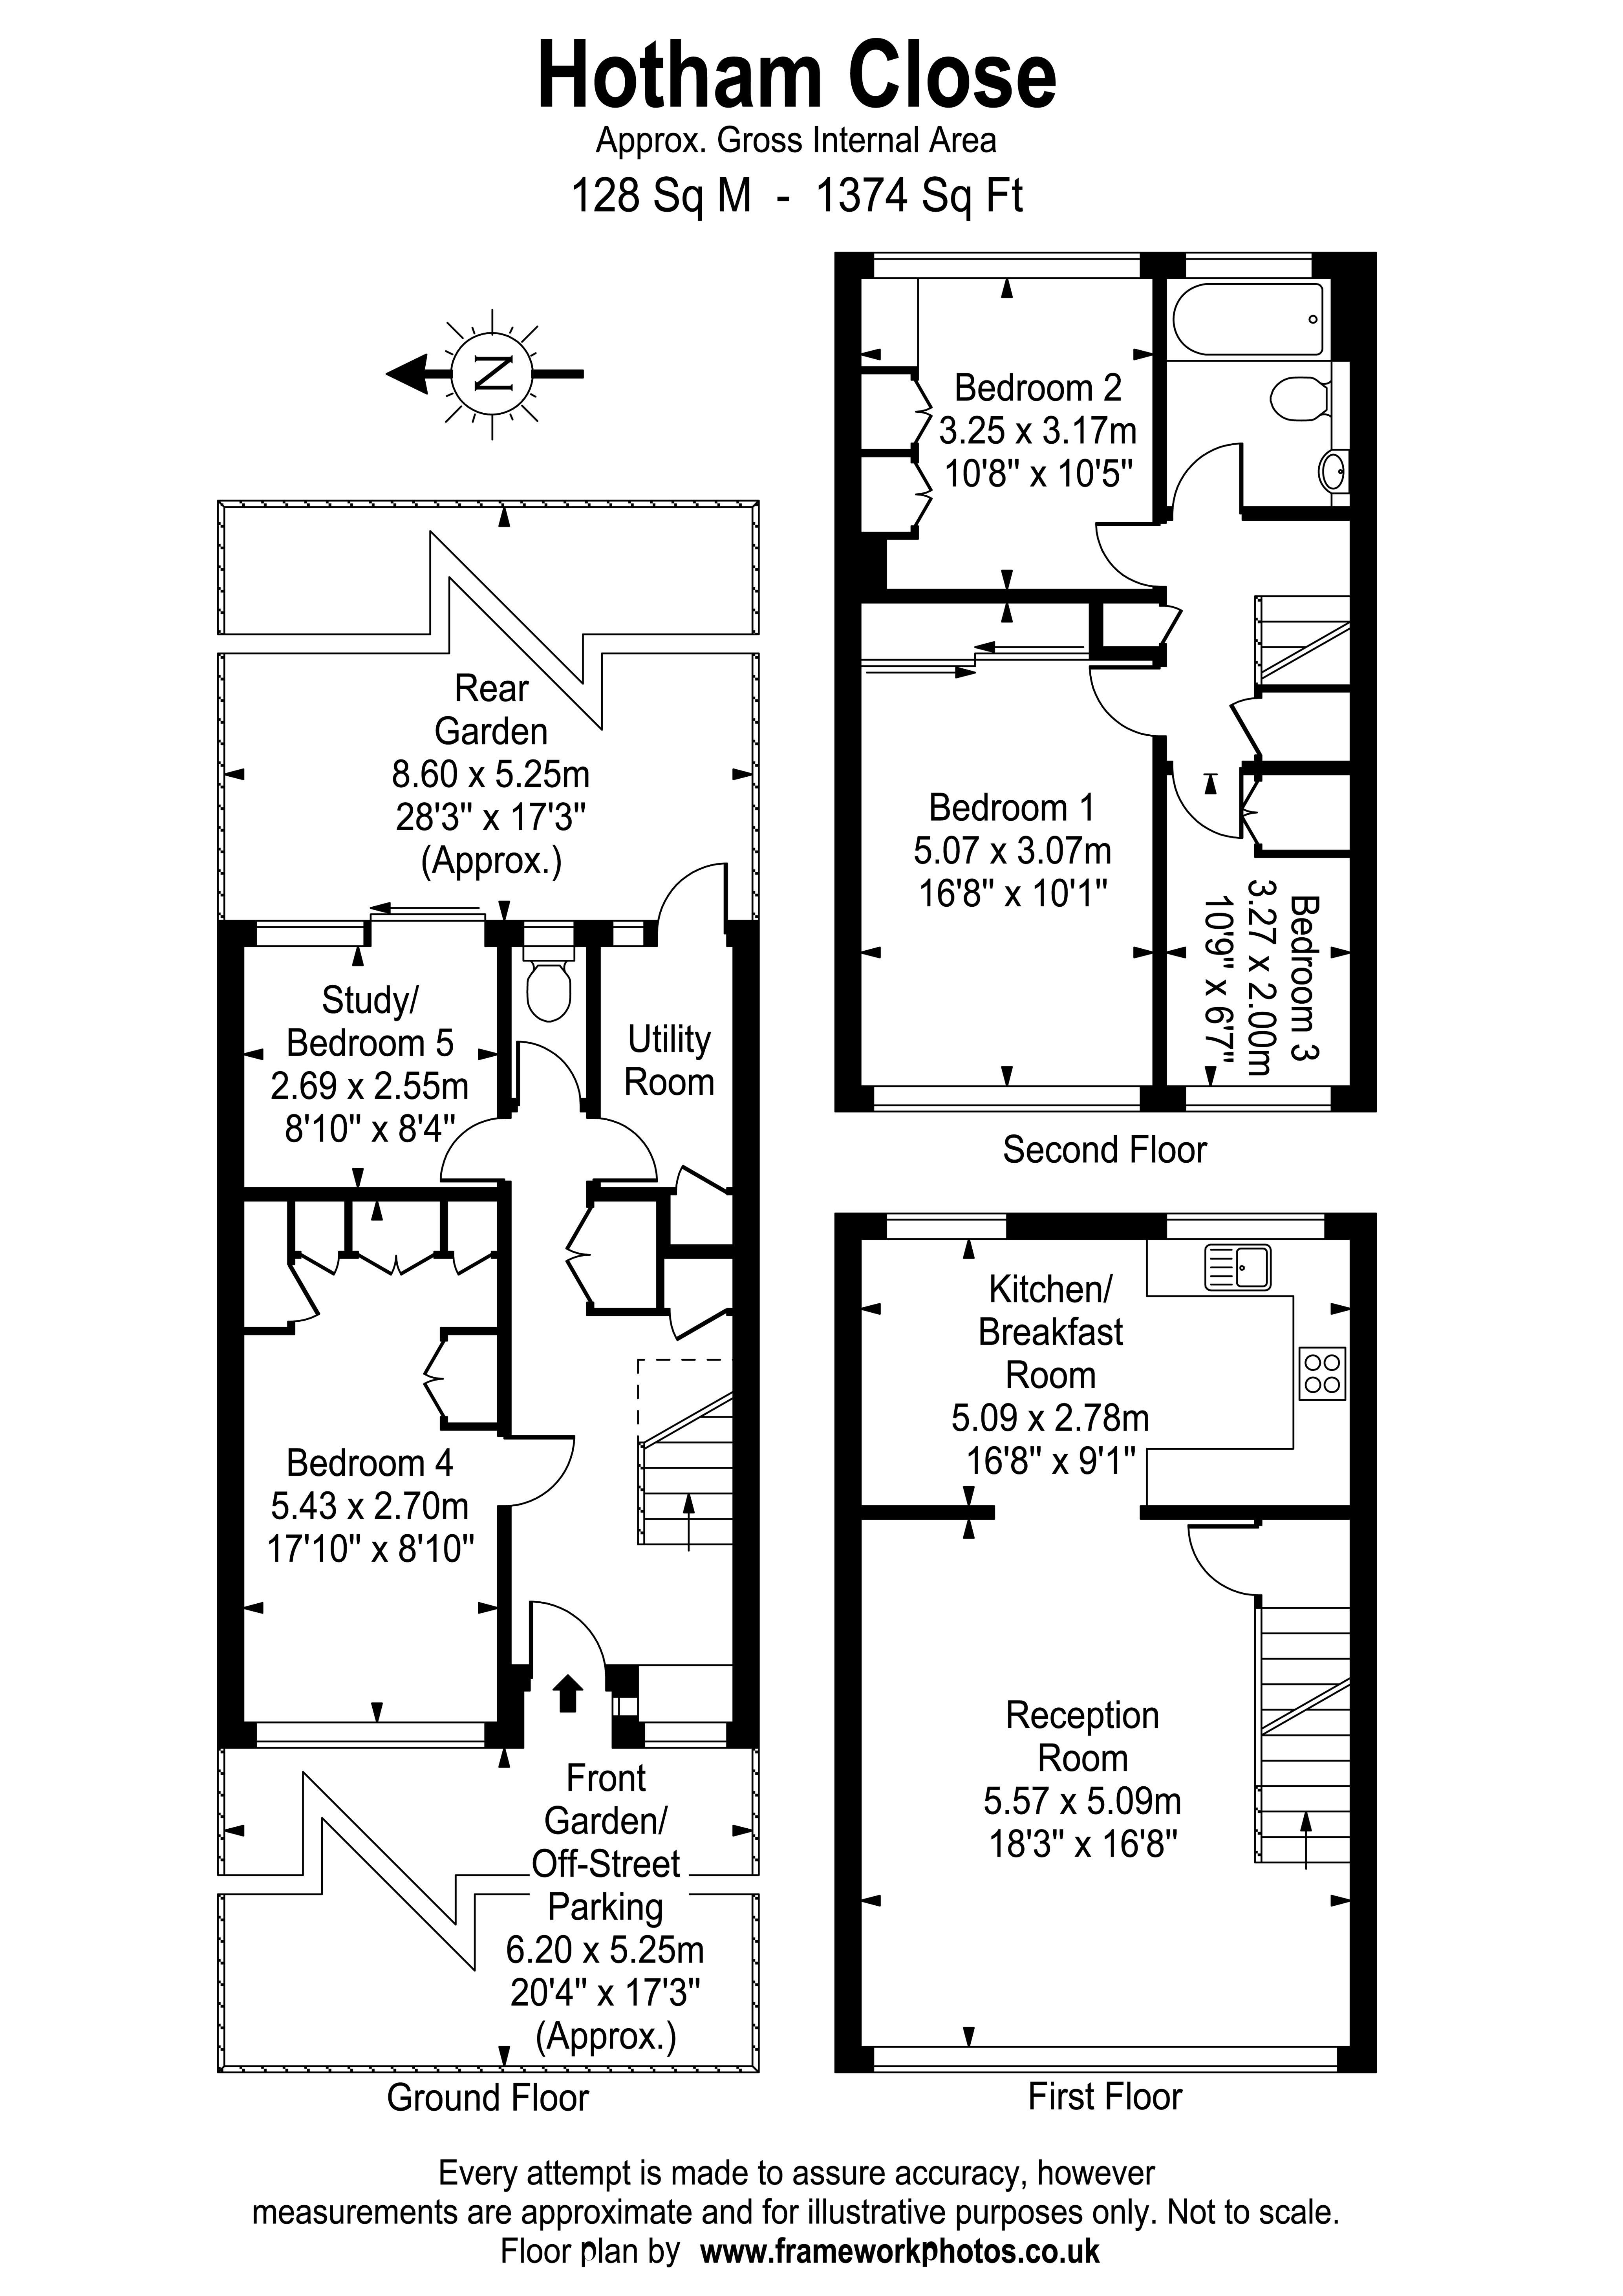 Floorplans For Hotham Close, Hurst Park, West Molesey